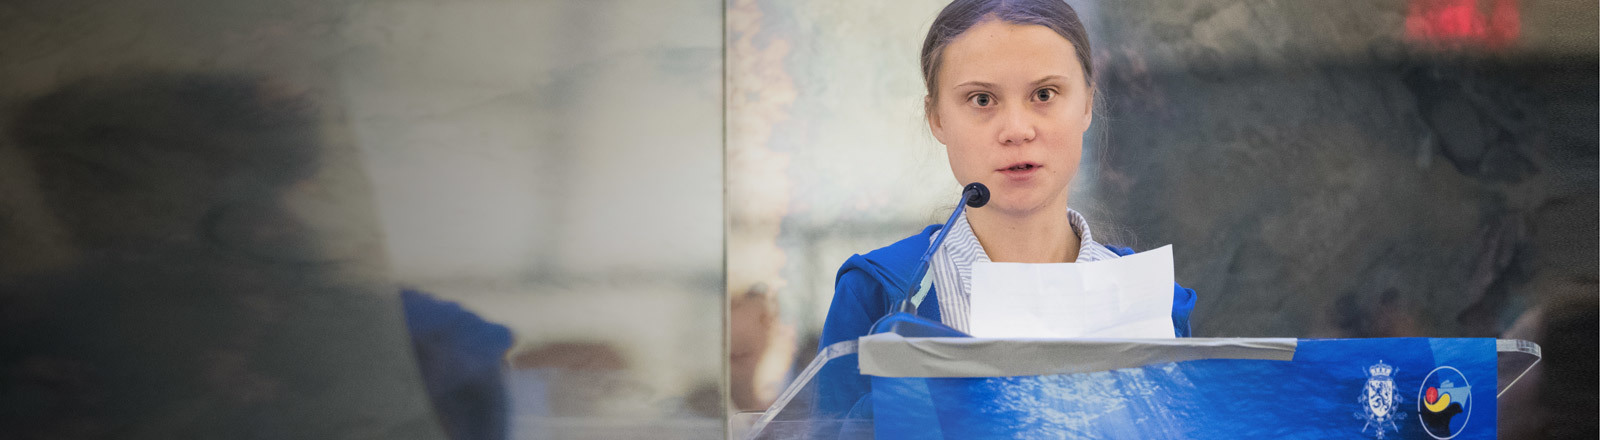 Greta Thunberg bei einer Ansprache im Rahmen des Blue Leaders meeting Call to action on ocean and climate in New York am 25.09.2019